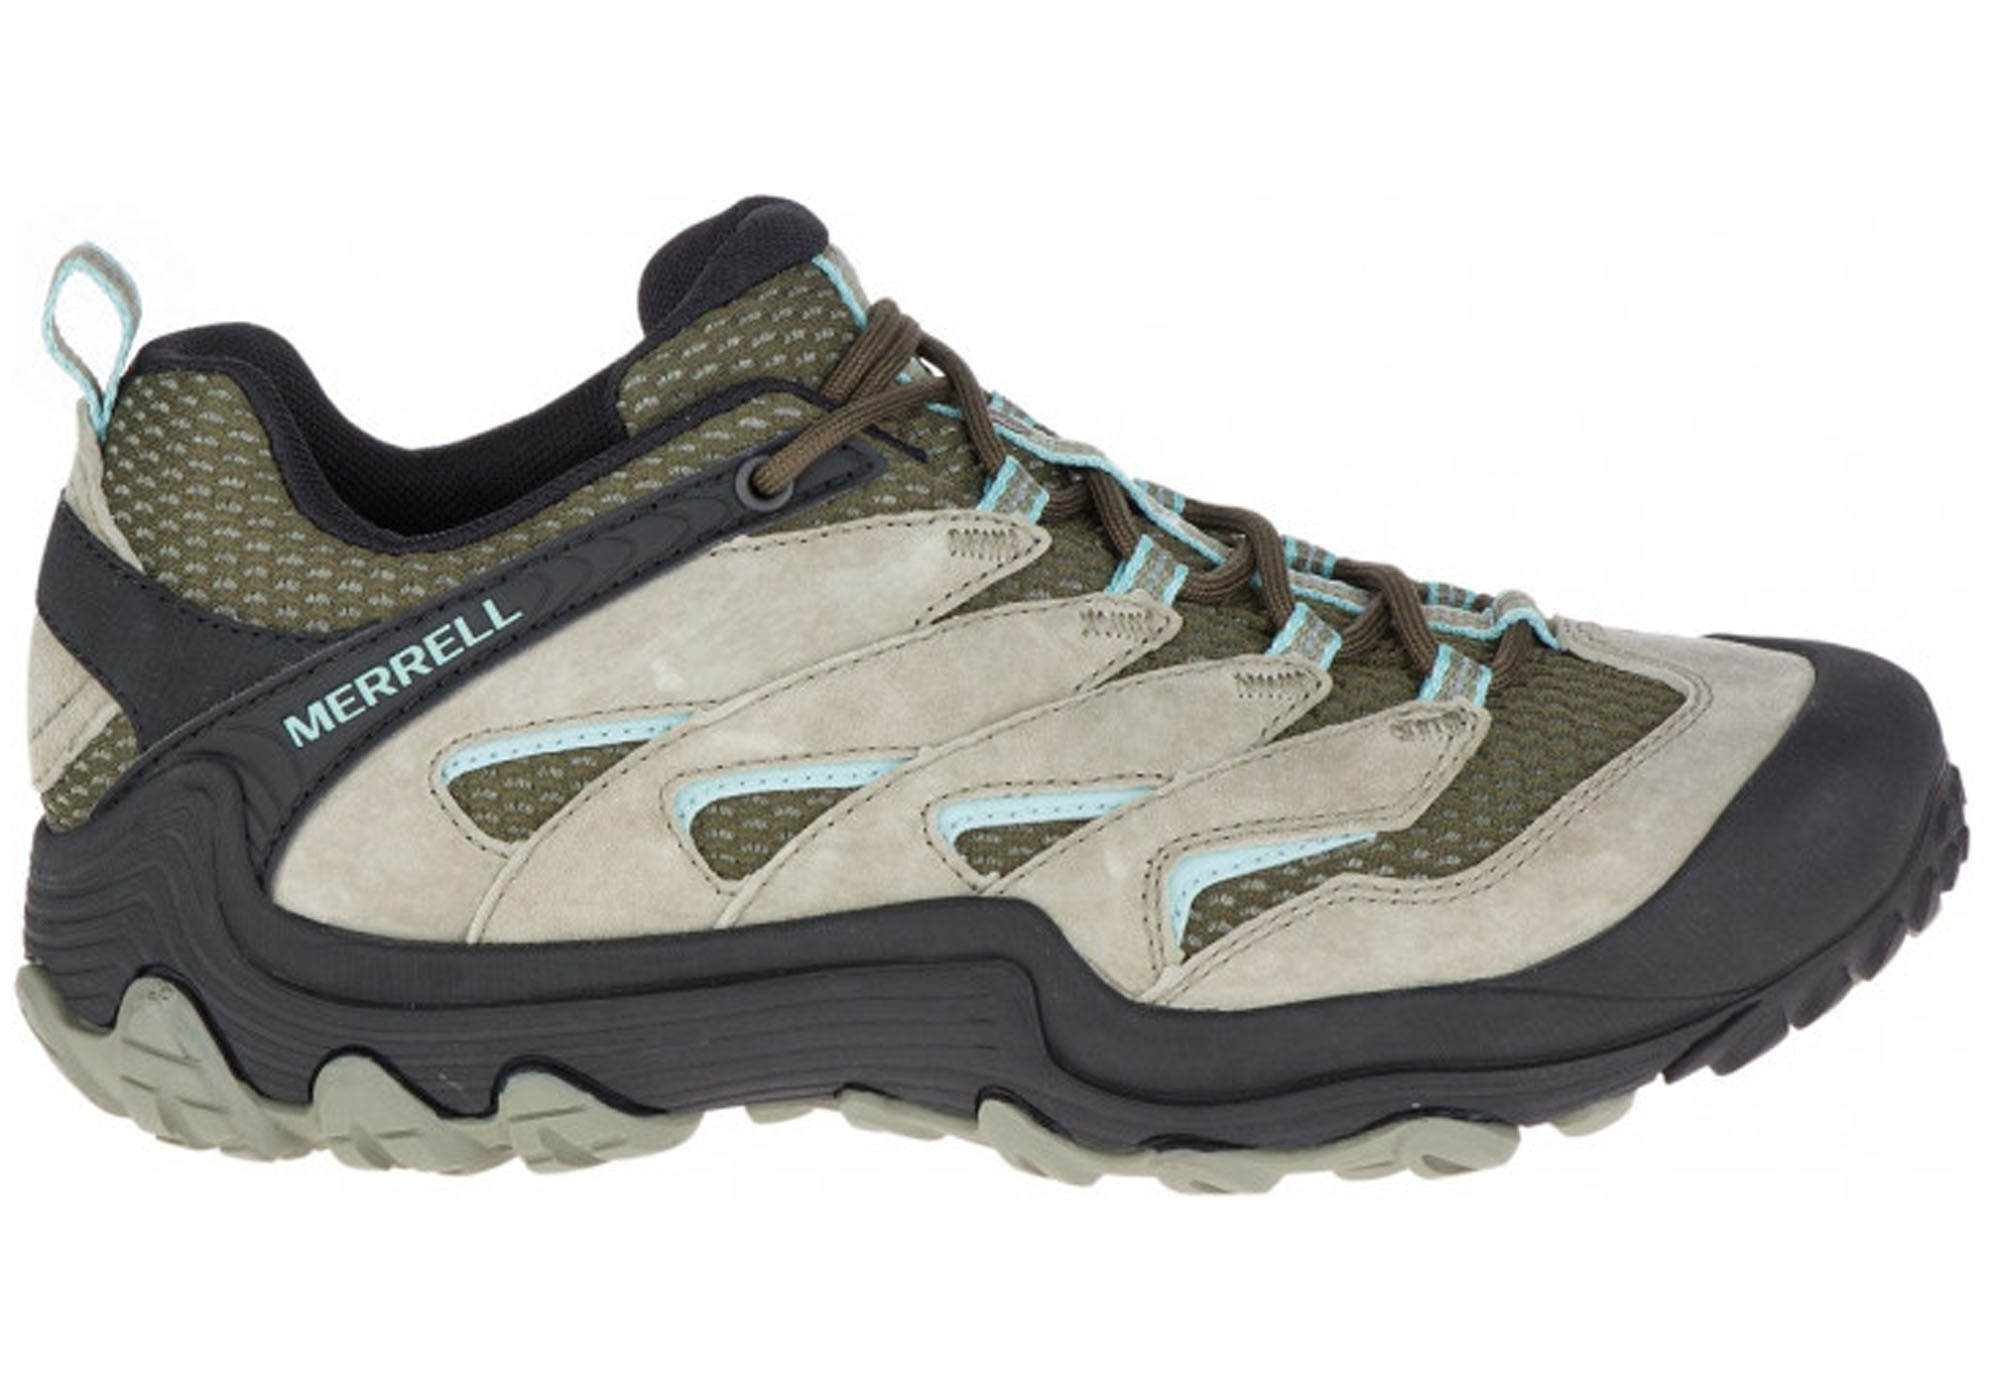 a602465d3f3 Merrell Chameleon 7 Limit Comfortable Womens Hiking Shoes | Brand ...